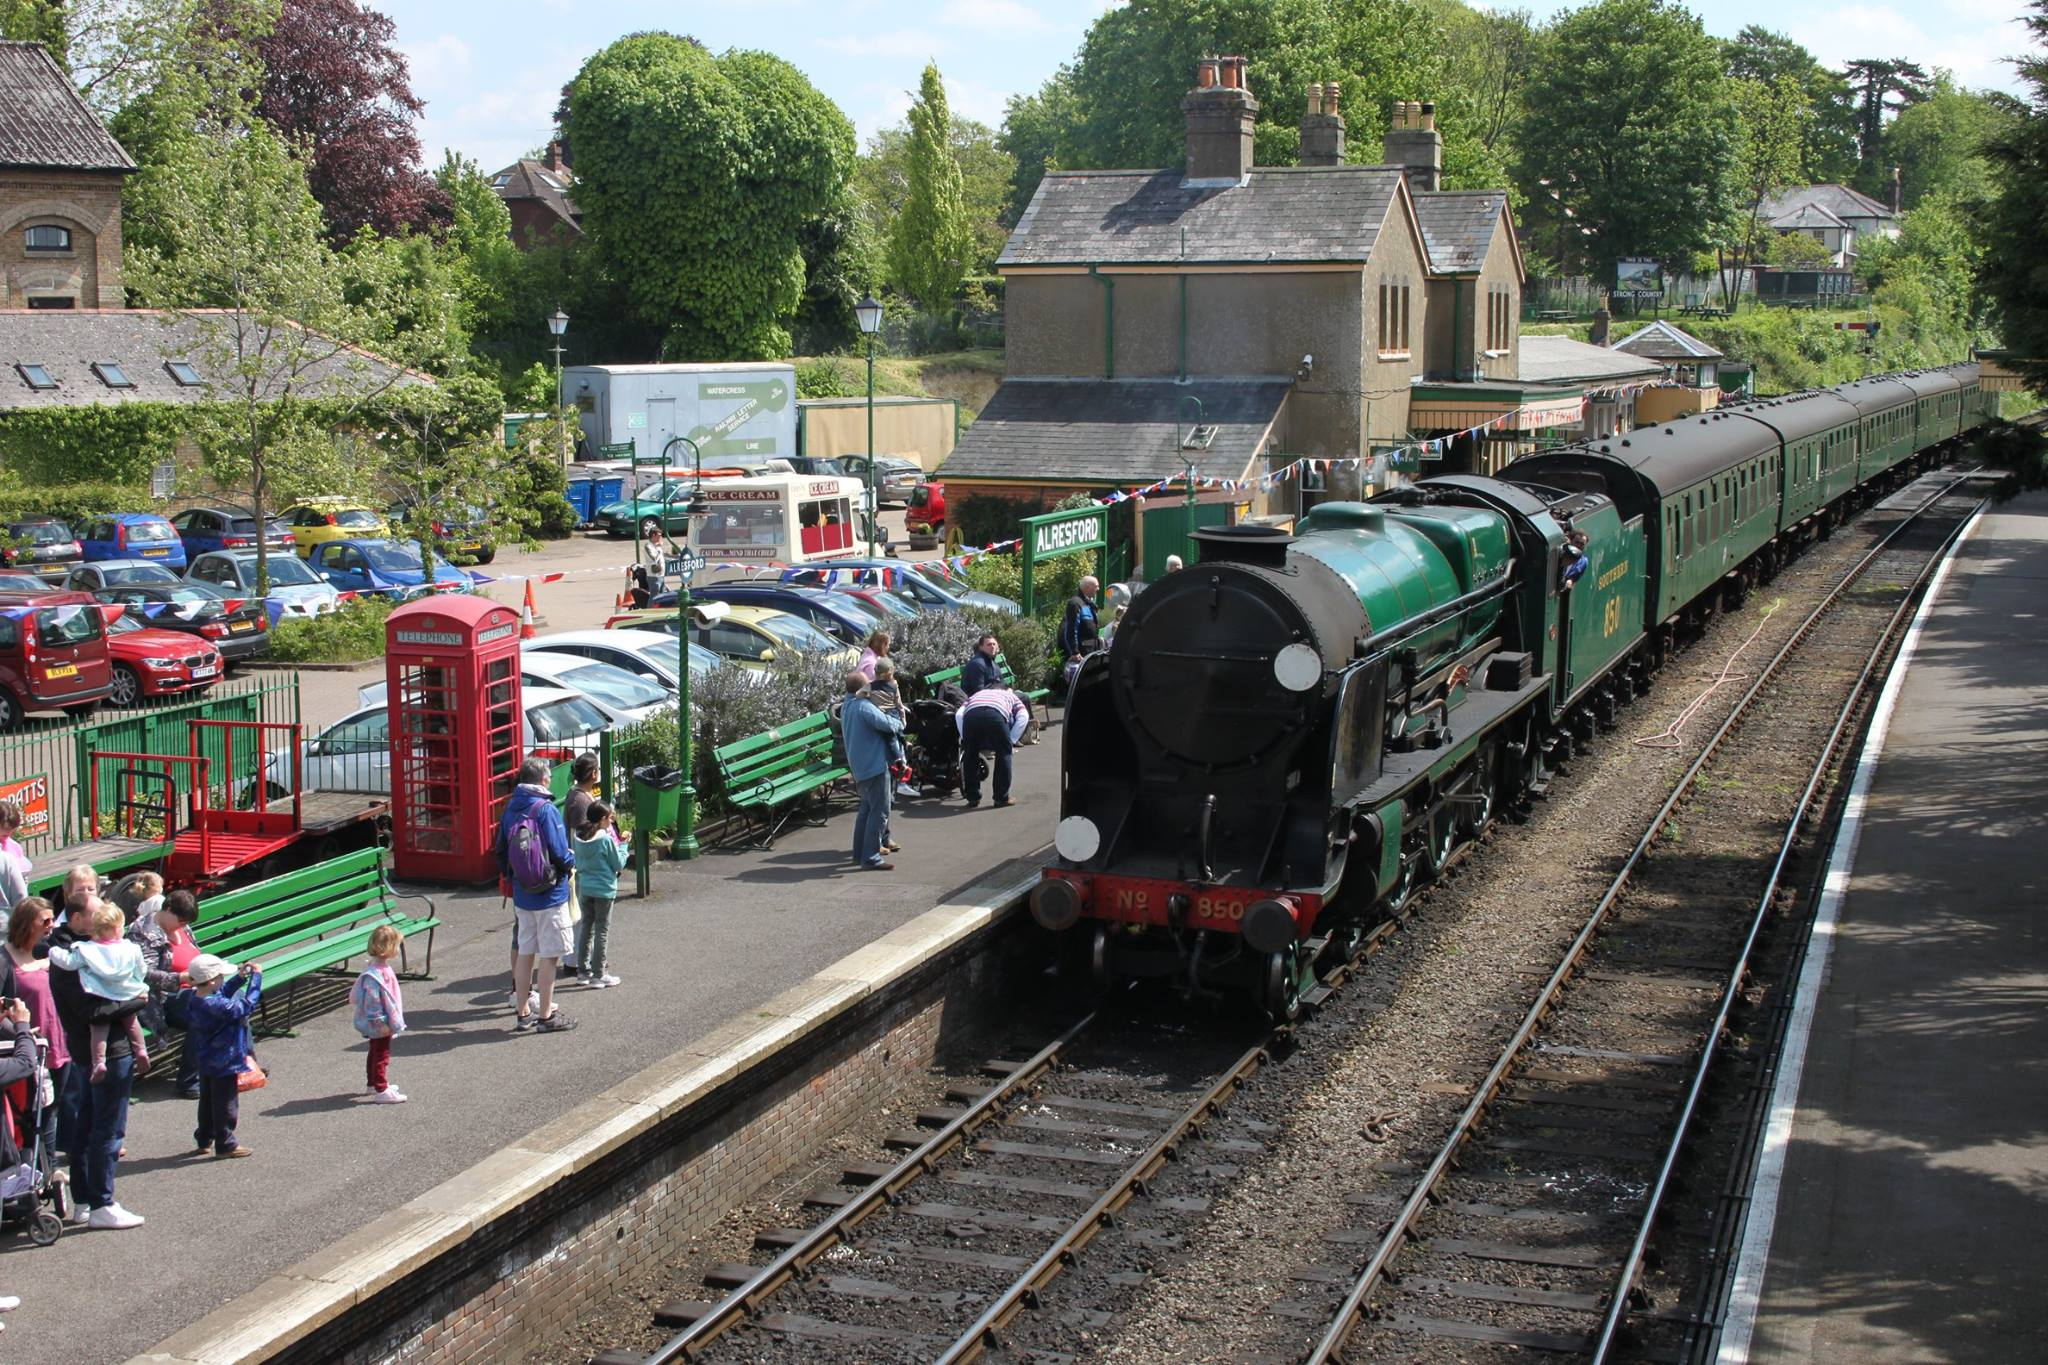 7th May 2015 Visit To The Mid Hants Railway Watercress